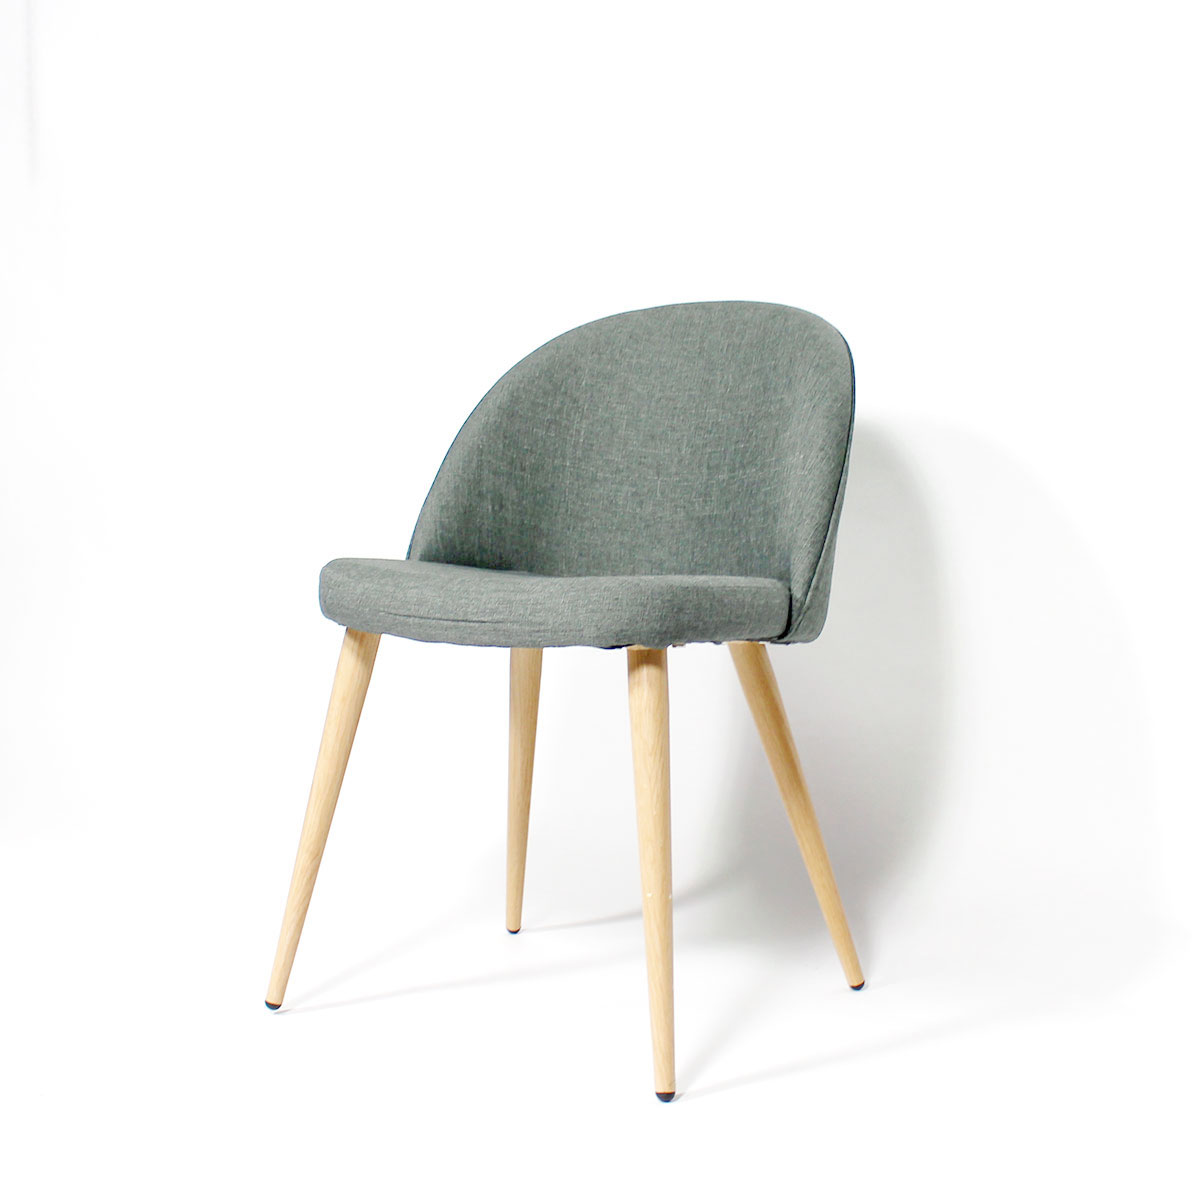 Chaise scandinave gris clair style fauteuil